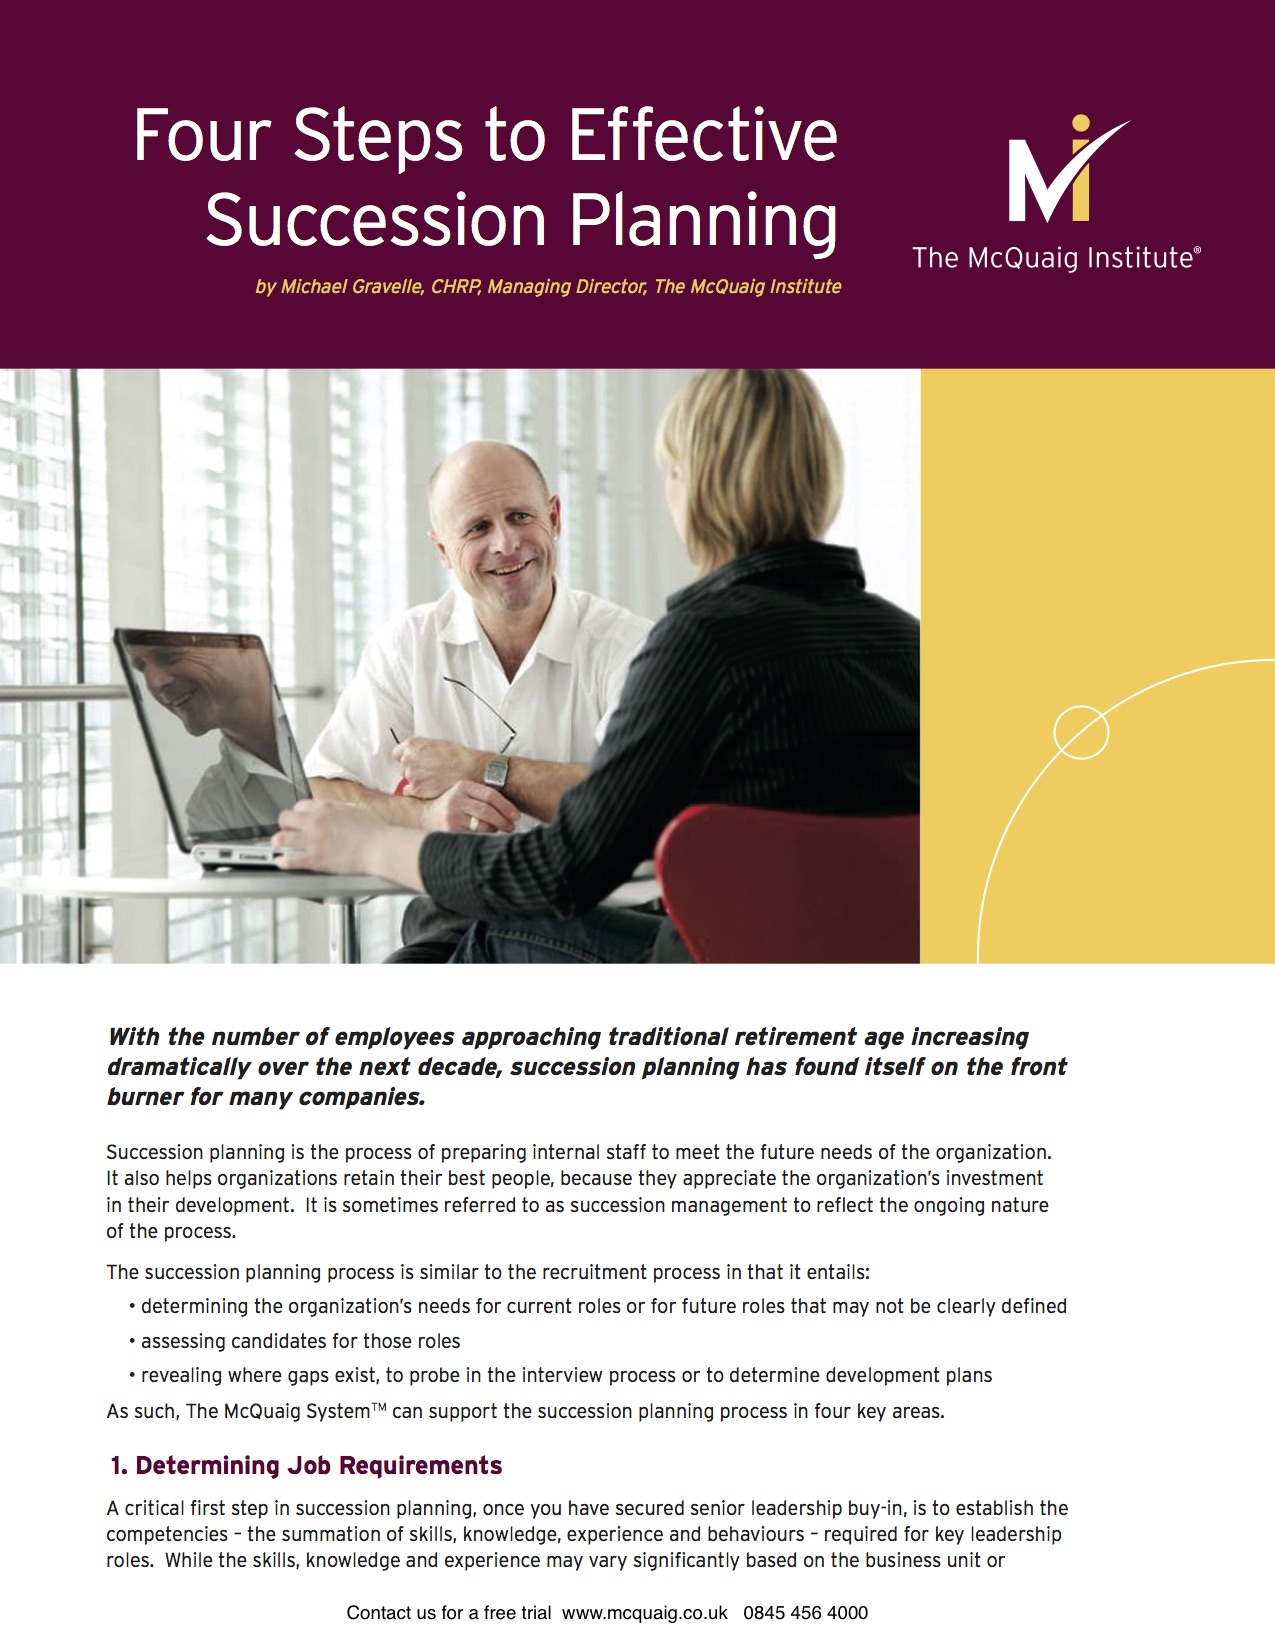 Four Steps to Effective Succession Planning from The McQuaig Psychometric System from Holst